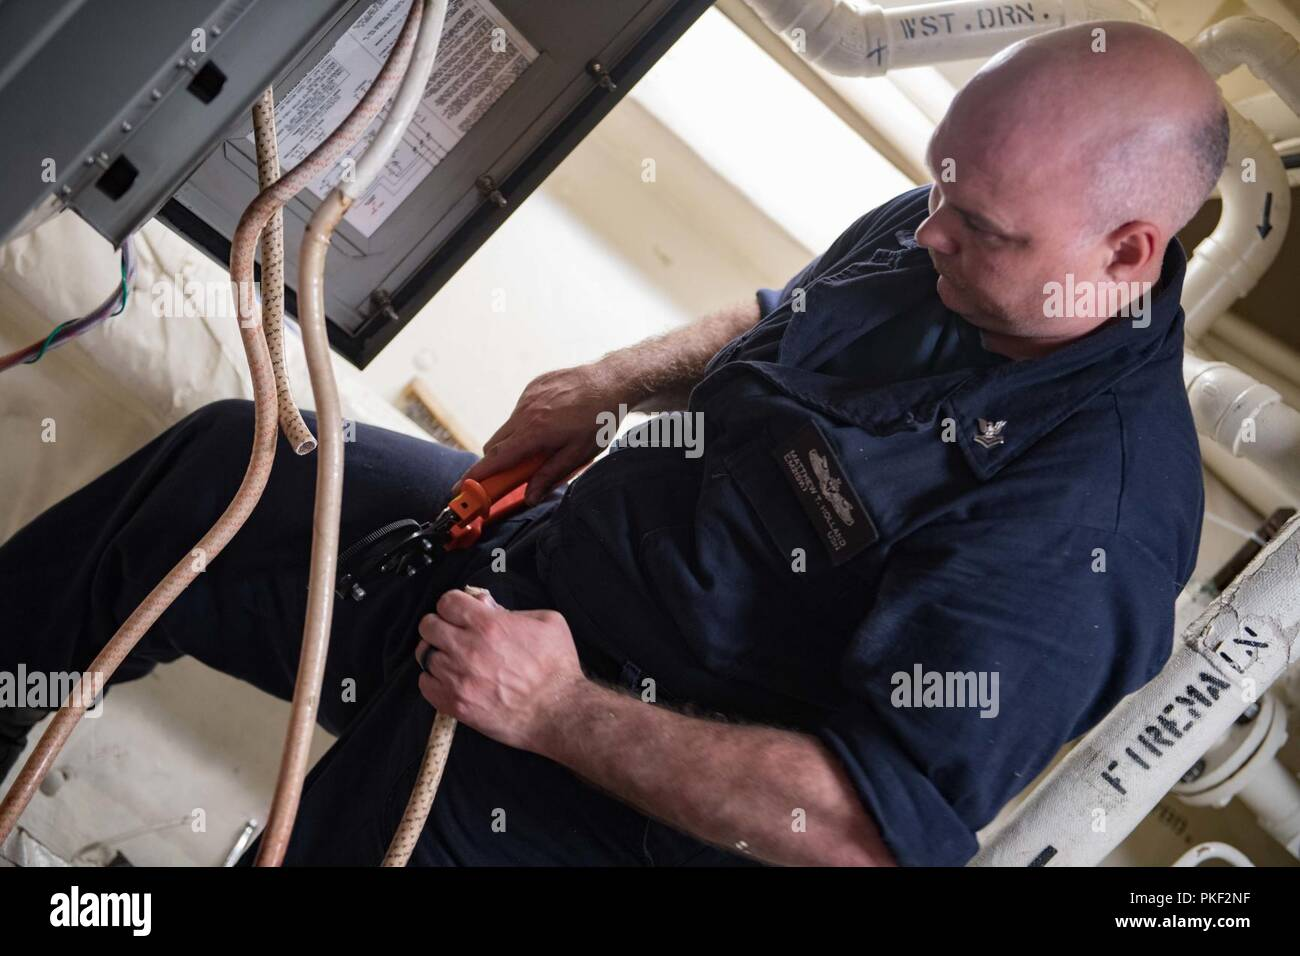 TALLINN, Estonia (Aug. 4, 2018) Electrician's Mate 2nd Class Matthew Holland repairs electrical equipment aboard the Arleigh Burke-class guided-missile destroyer USS Winston S. Churchill (DDG 81), Aug. 4, 2018. Winston S. Churchill, homeported at Naval Station Norfolk, is conducting naval operations in the U.S. 6th Fleet area of operations in support of U.S. national security interests in Europe and Africa. Stock Photo